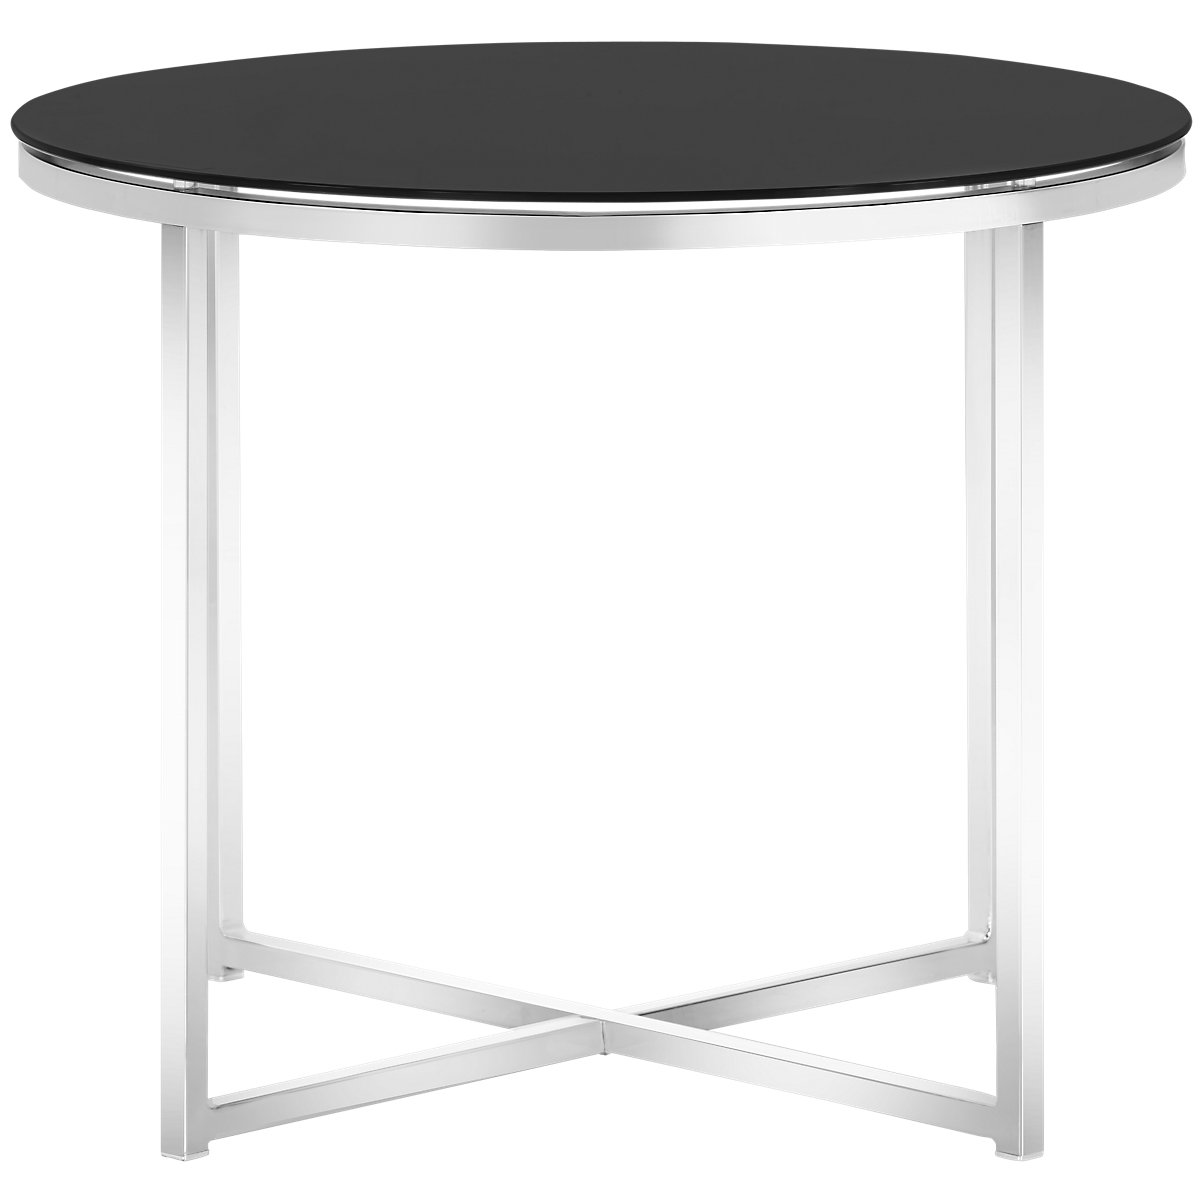 City furniture kross black glass round end table for Black round end table